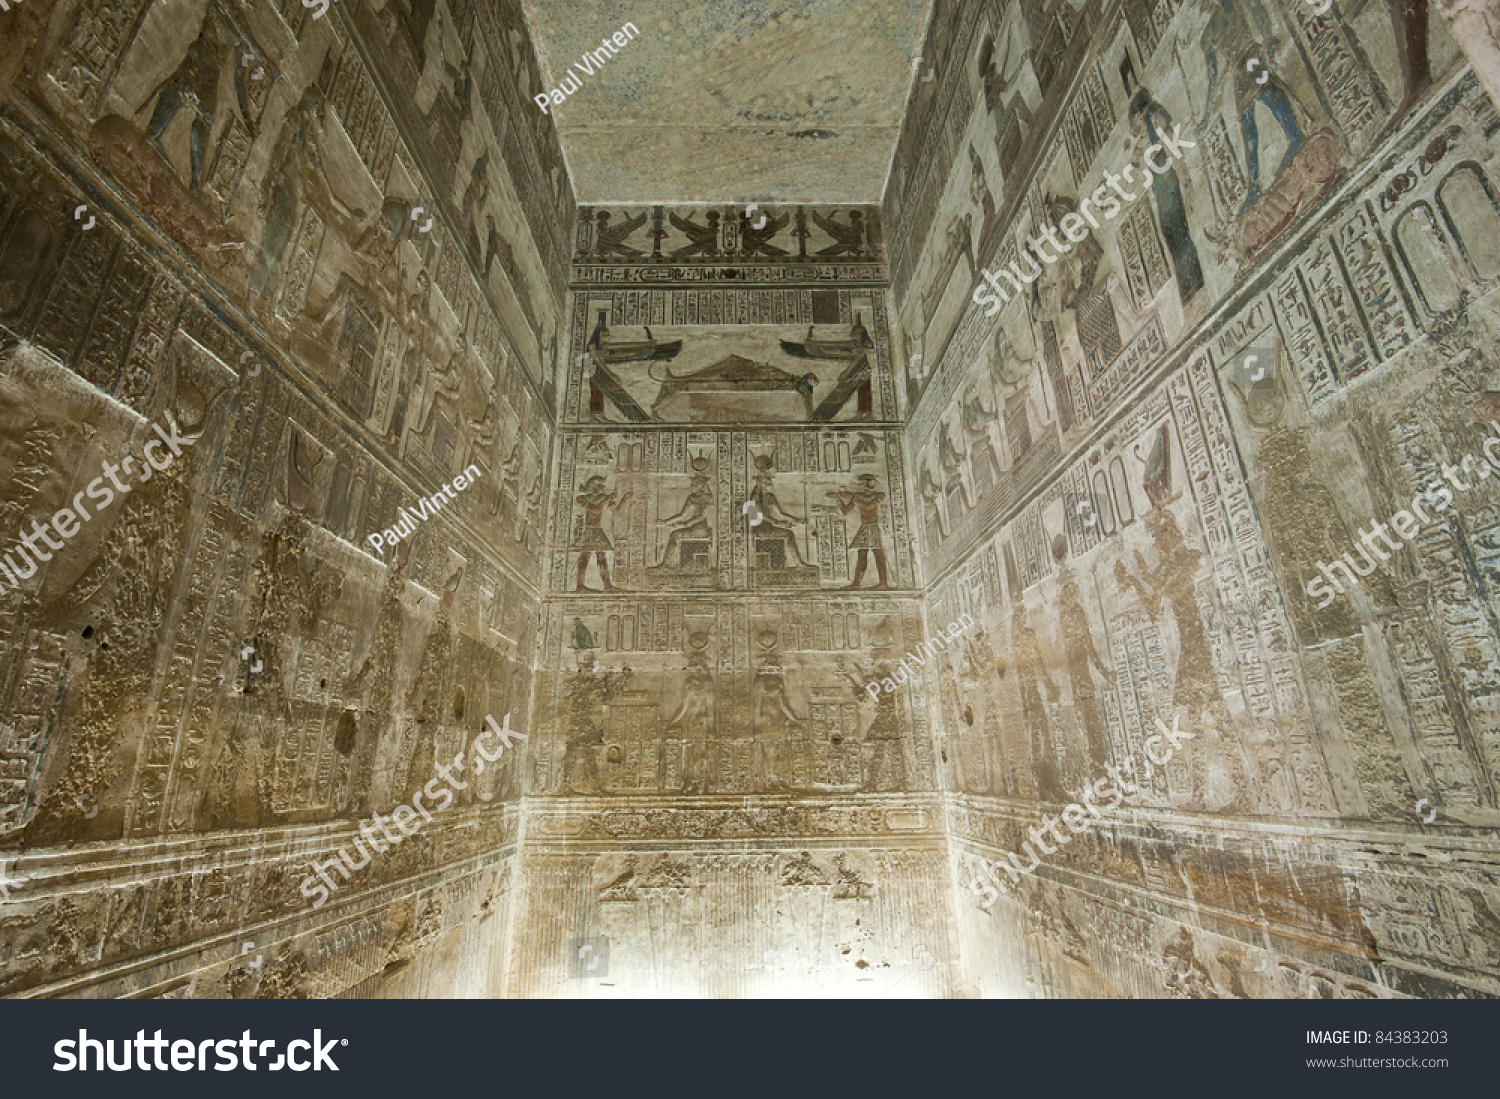 Ancient Egyptian Interior Architecture hieroglyphic carvings paintings on interior walls stock photo